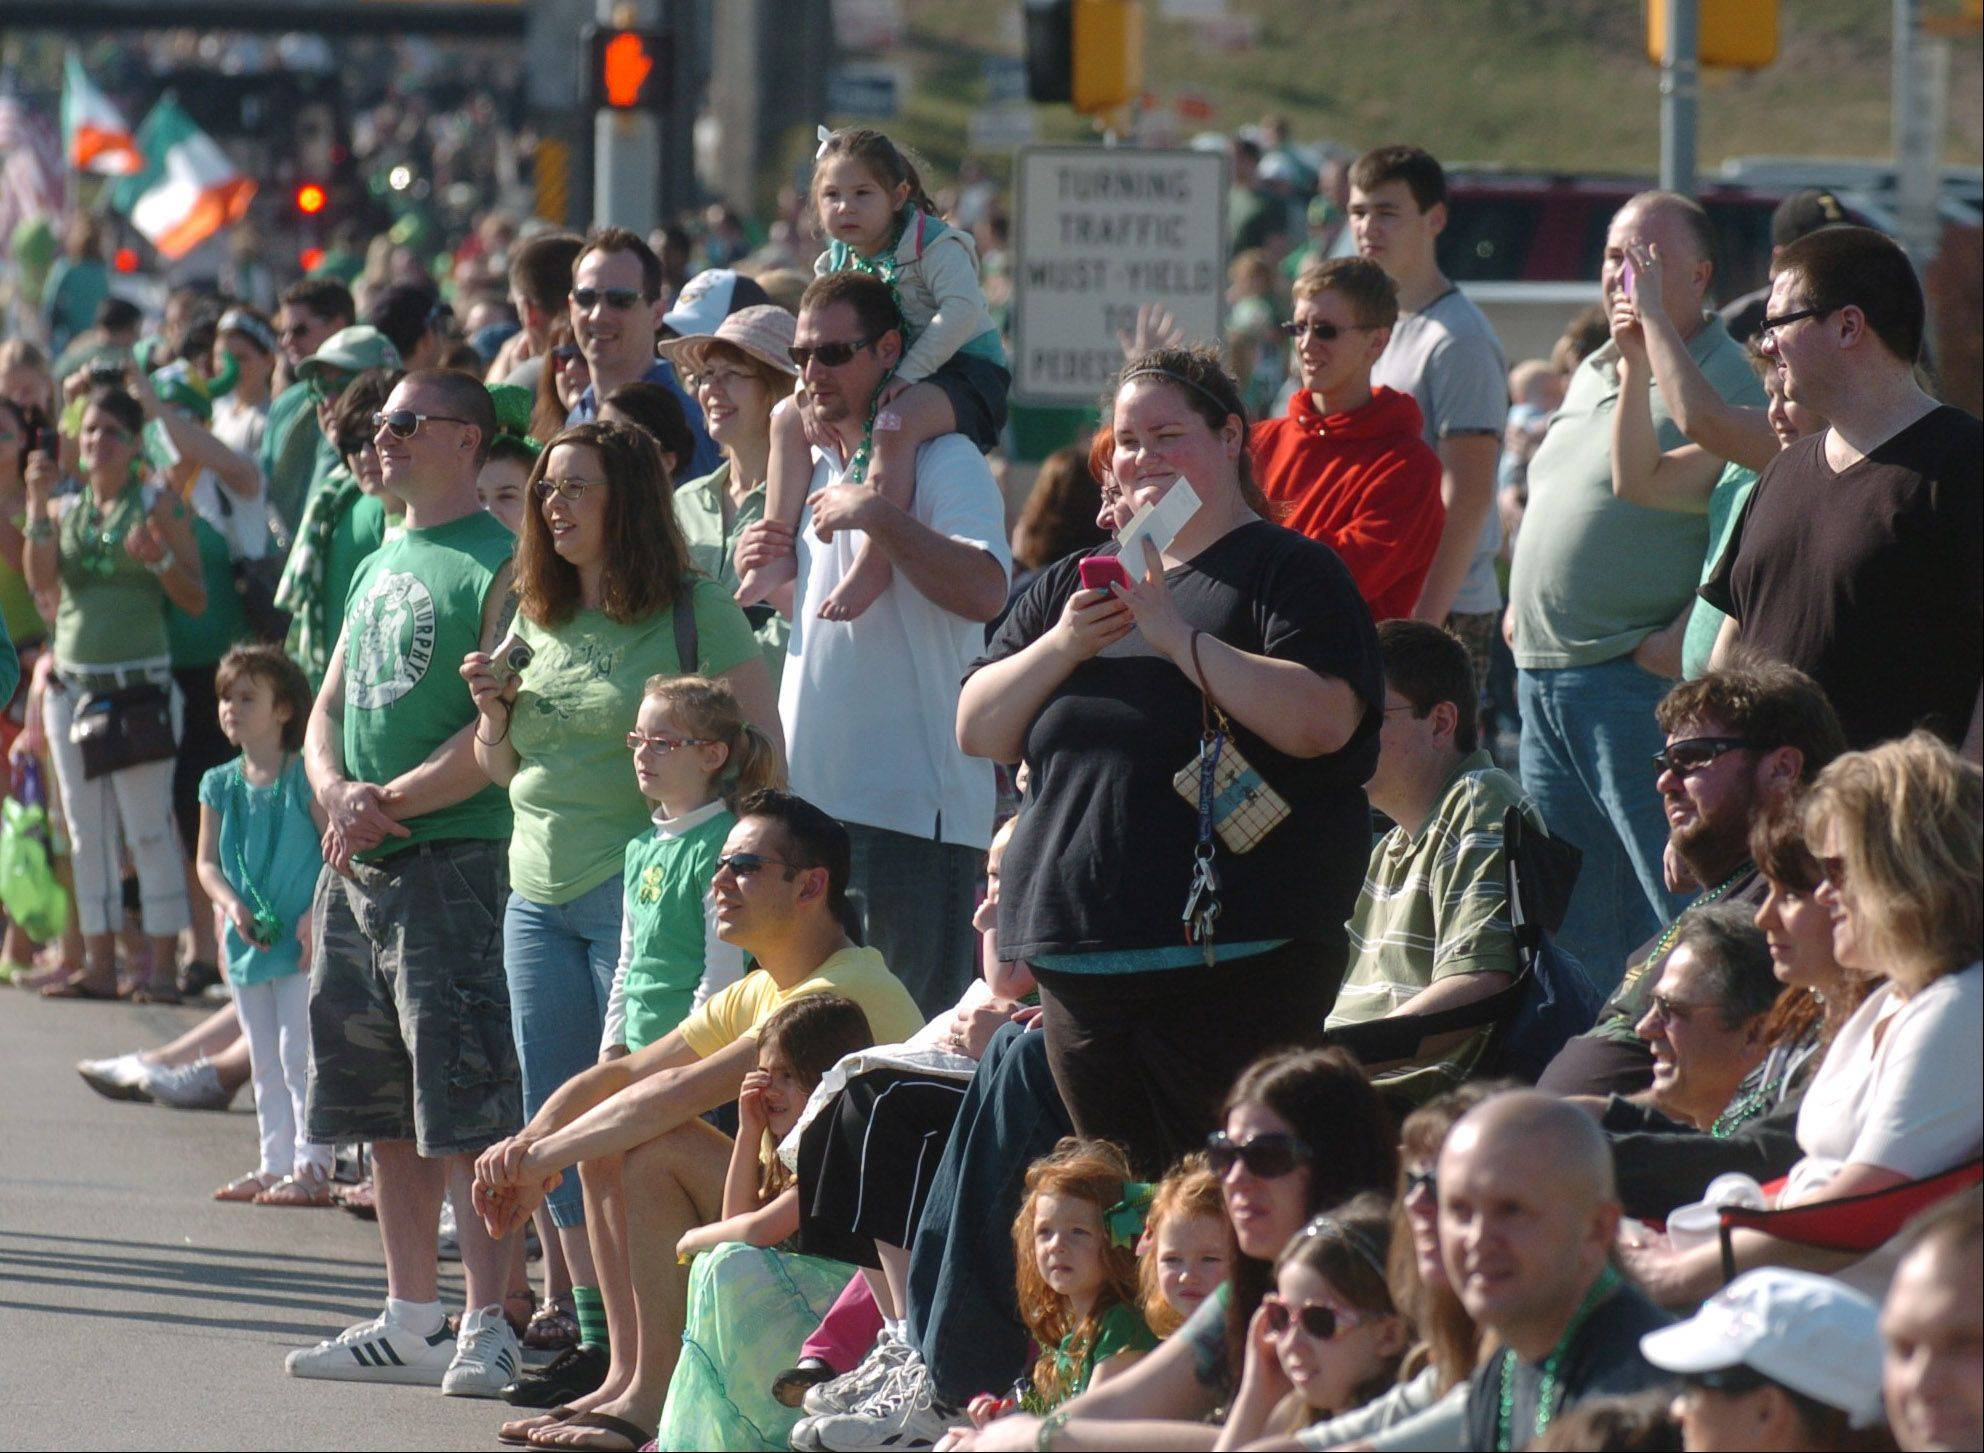 The St. Patricks day parade in Naperville Saturday was complemented by great weather.